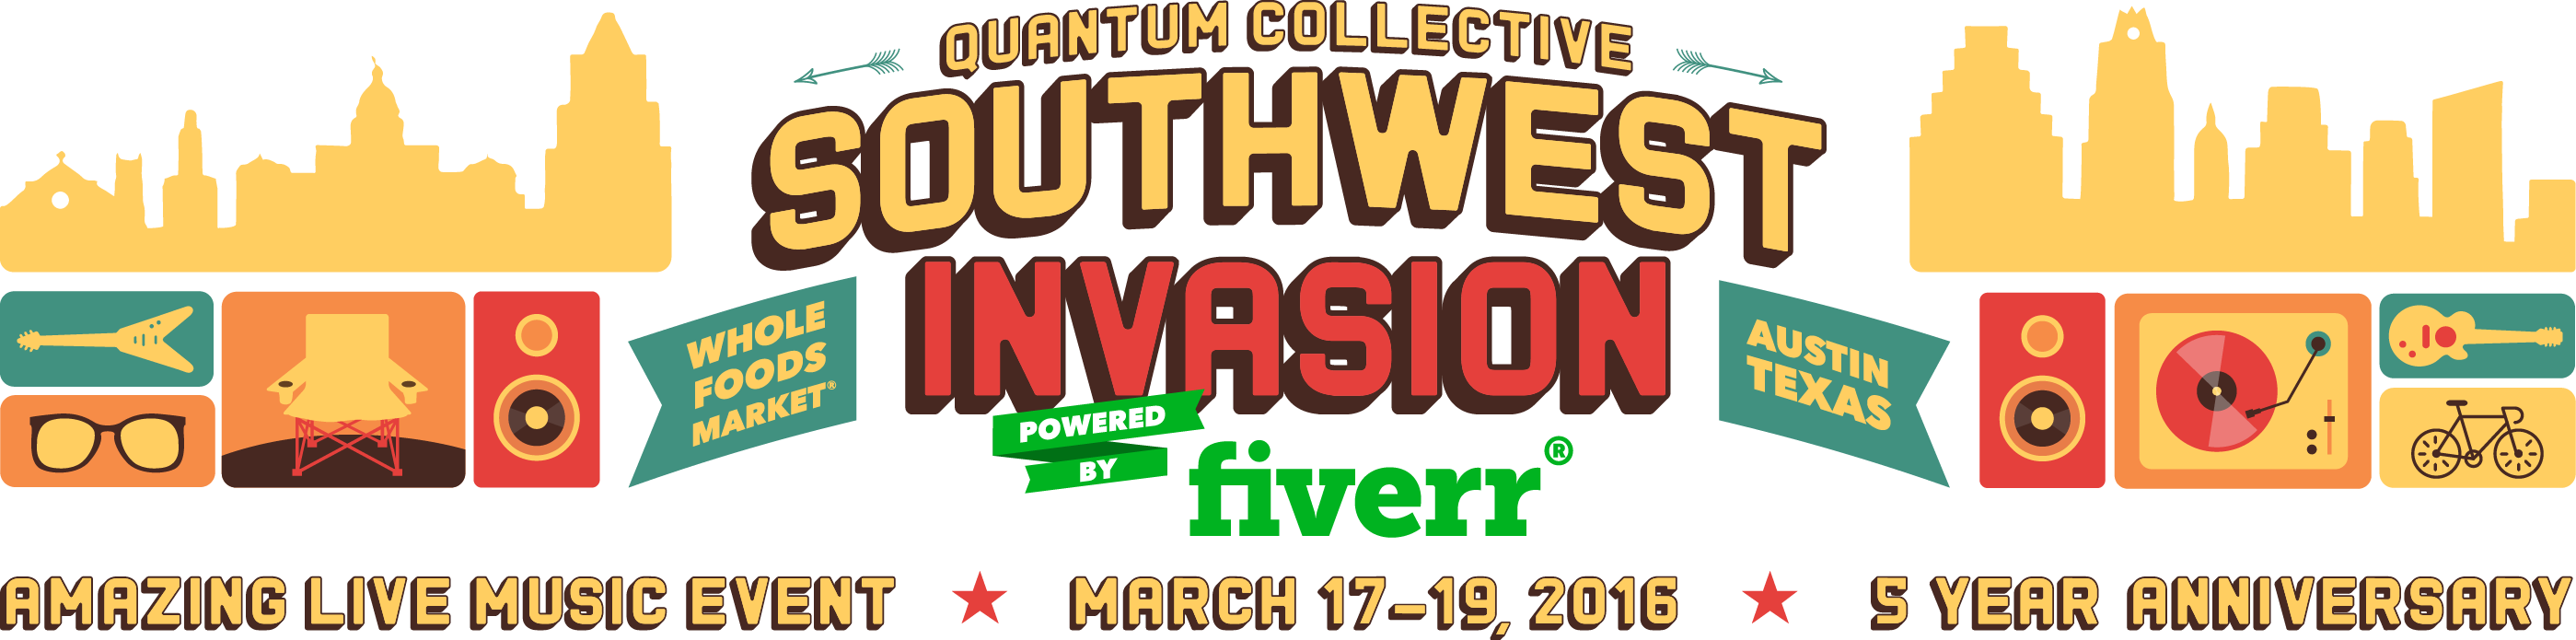 Southwest Invasion 2016 Powered By Fiverr